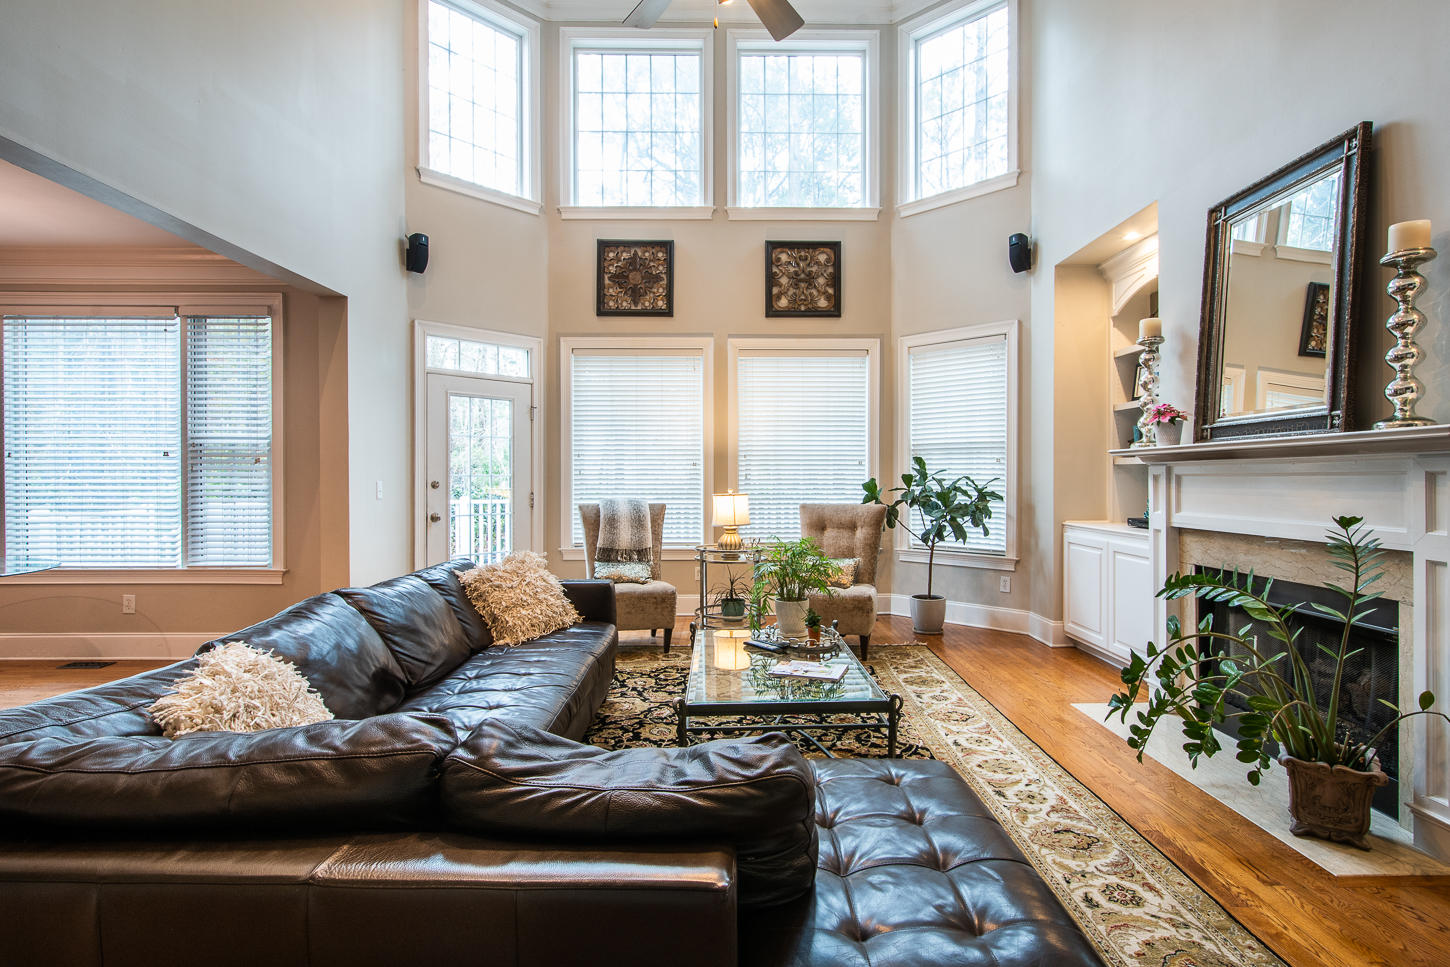 Dunes West Homes For Sale - 1794 Shell Ring, Mount Pleasant, SC - 15